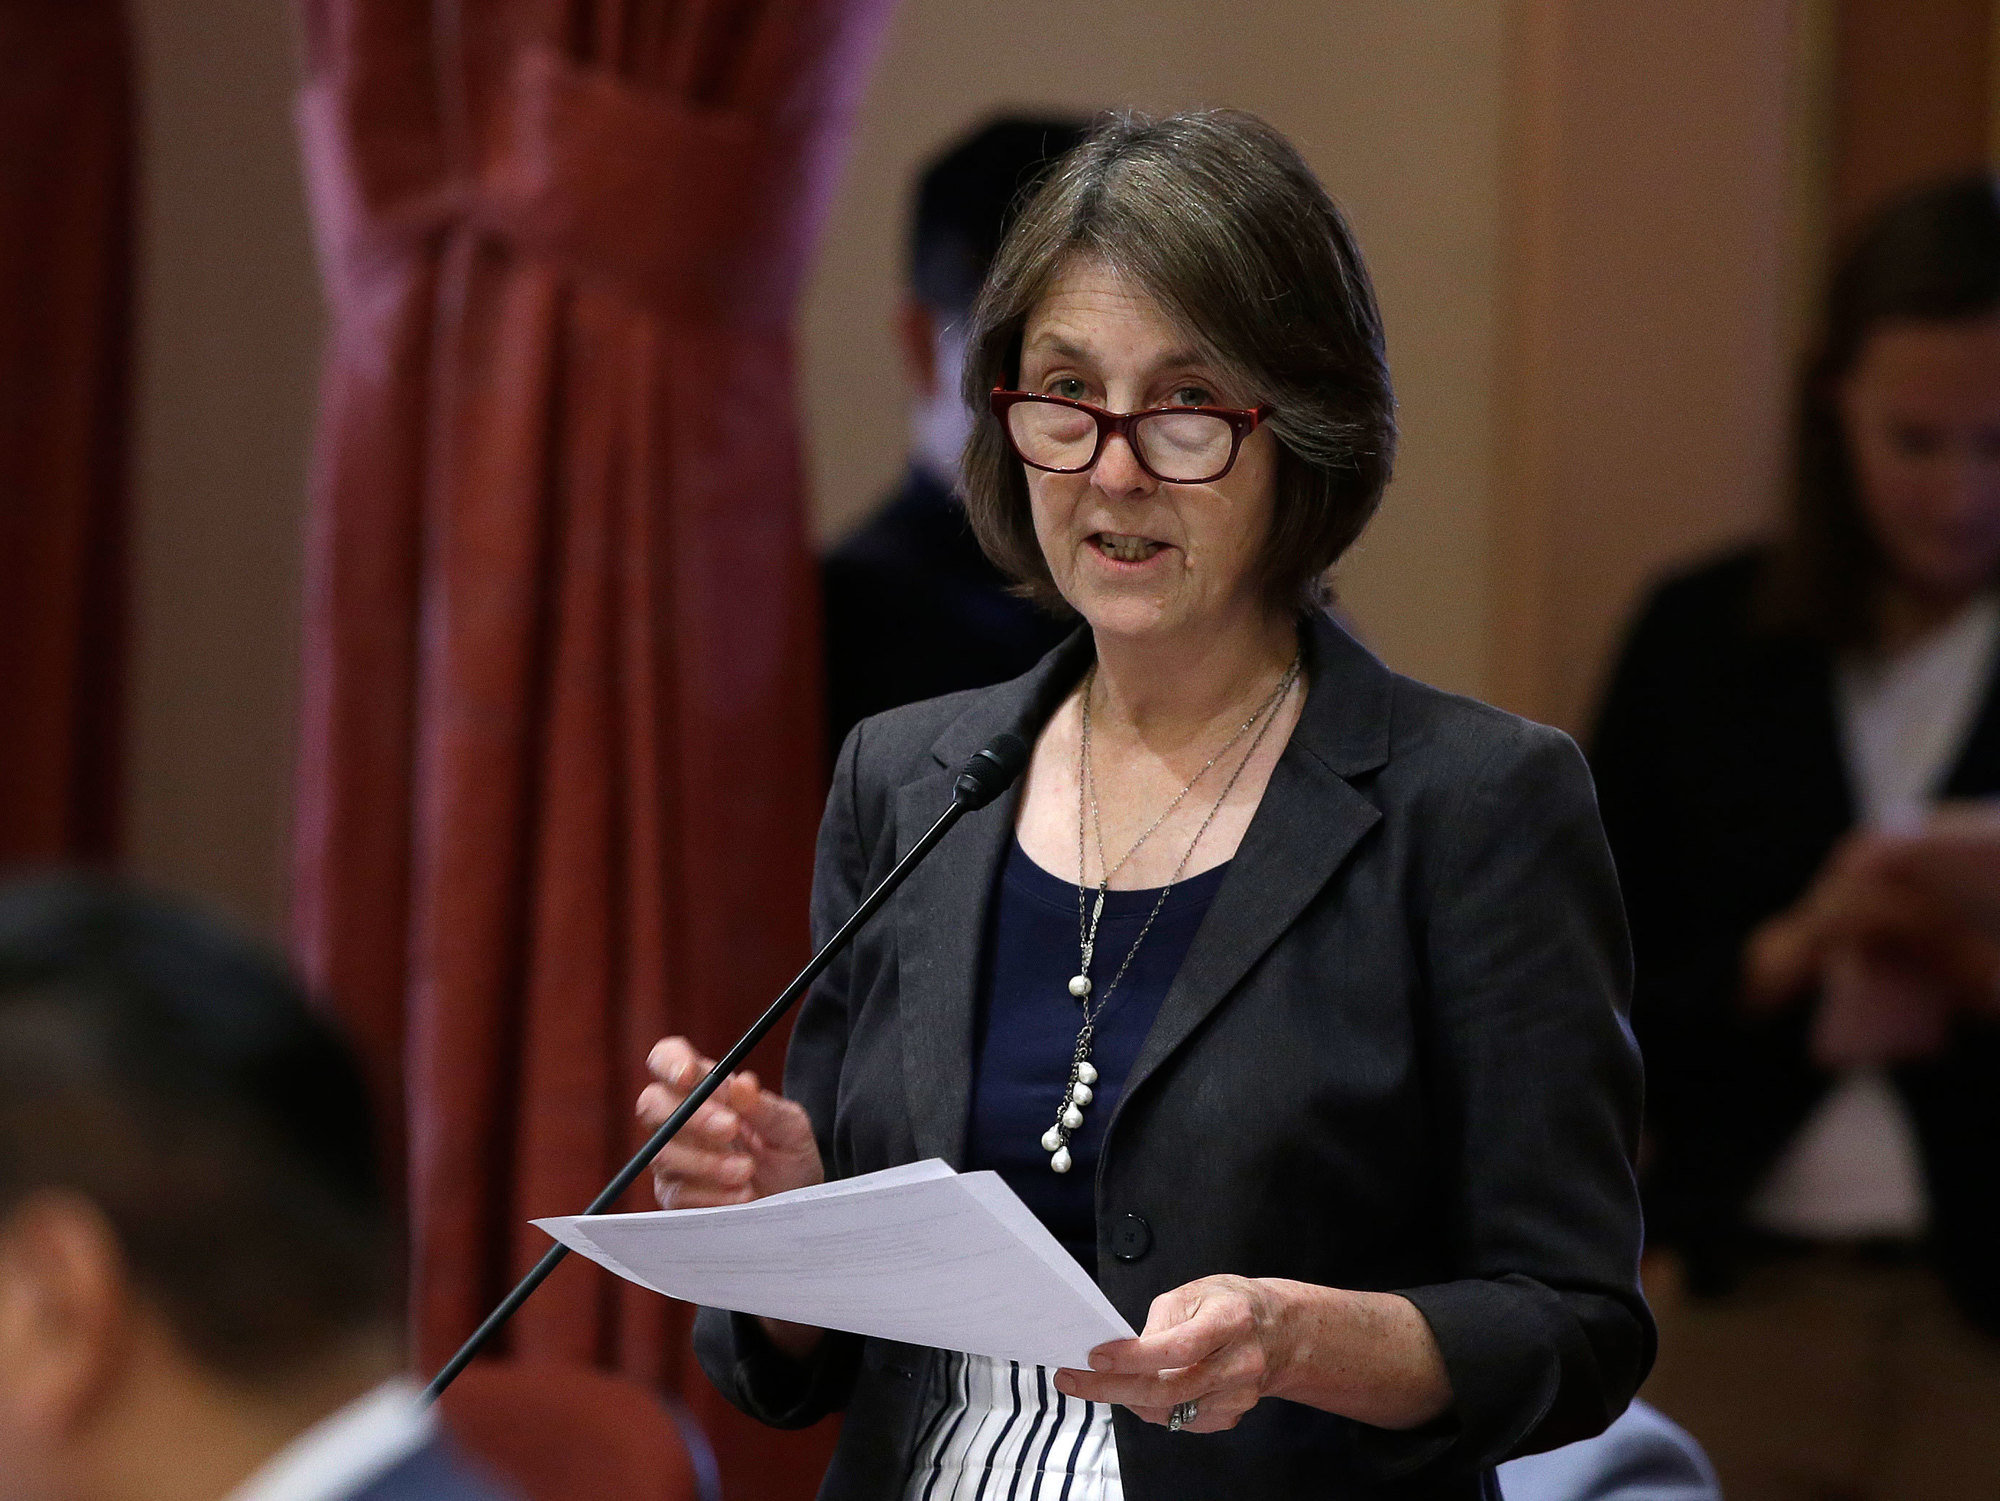 A measure sponsored by state Sen. Nancy Skinner, D-Berkeley, that would allow the public release of police reports dealing with possible officer misconduct was approved by the Senate in 2018.